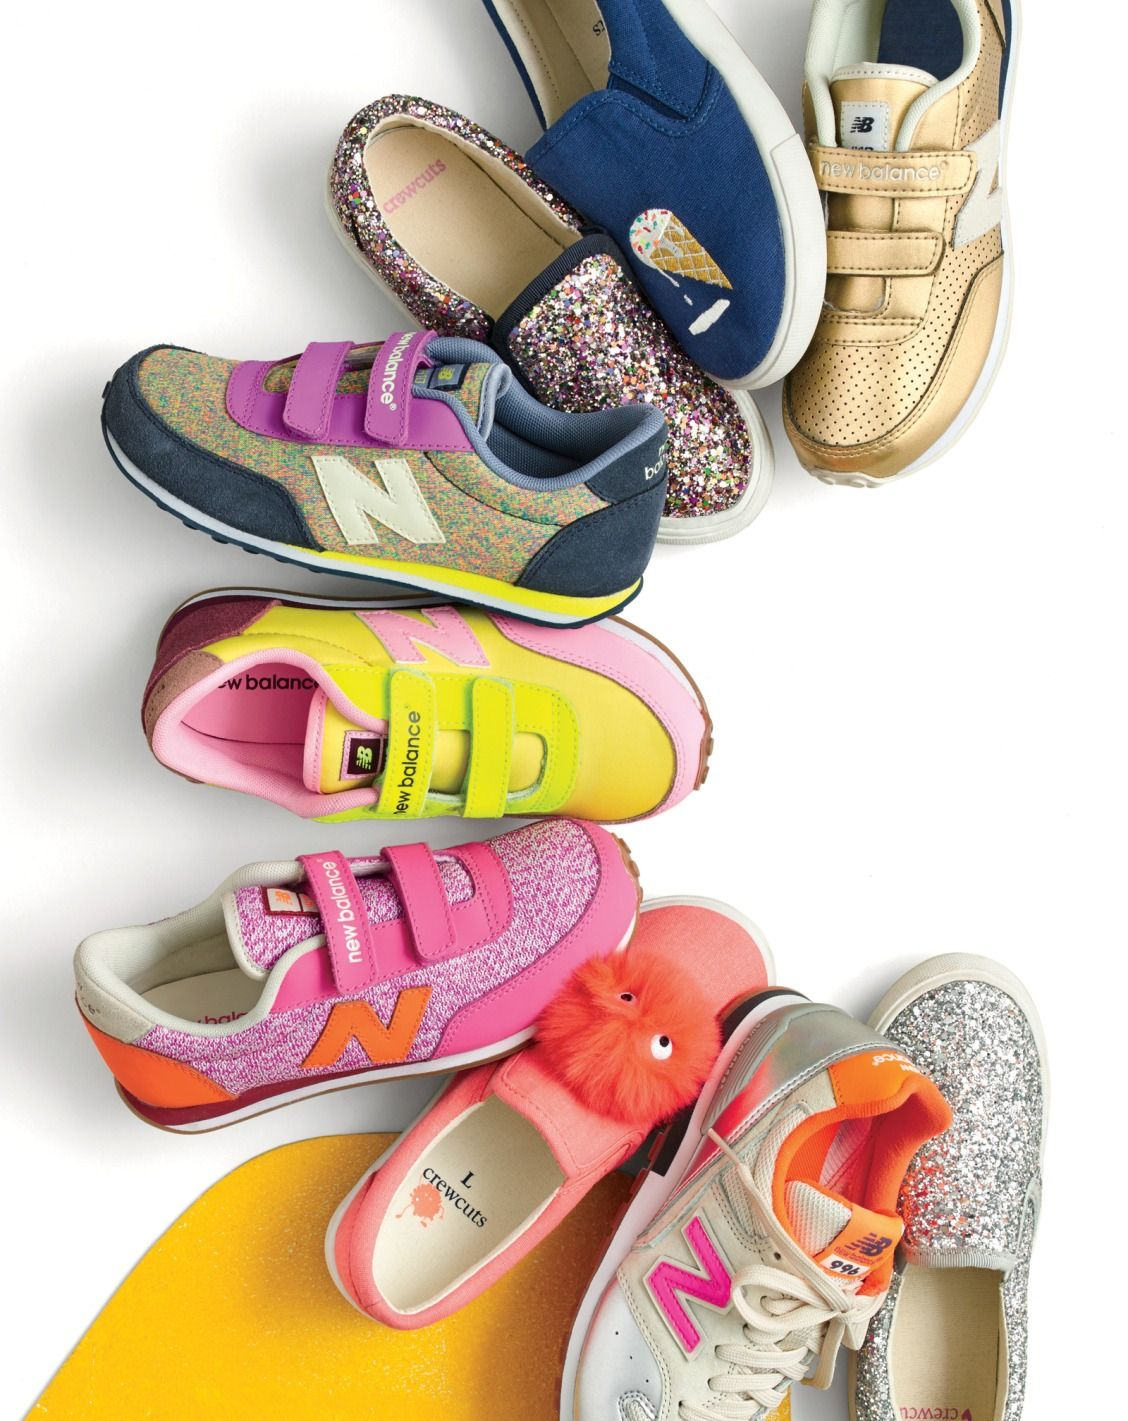 Next level amazing covered crewcuts sneakers. Slip ons covered amazing in e96e71